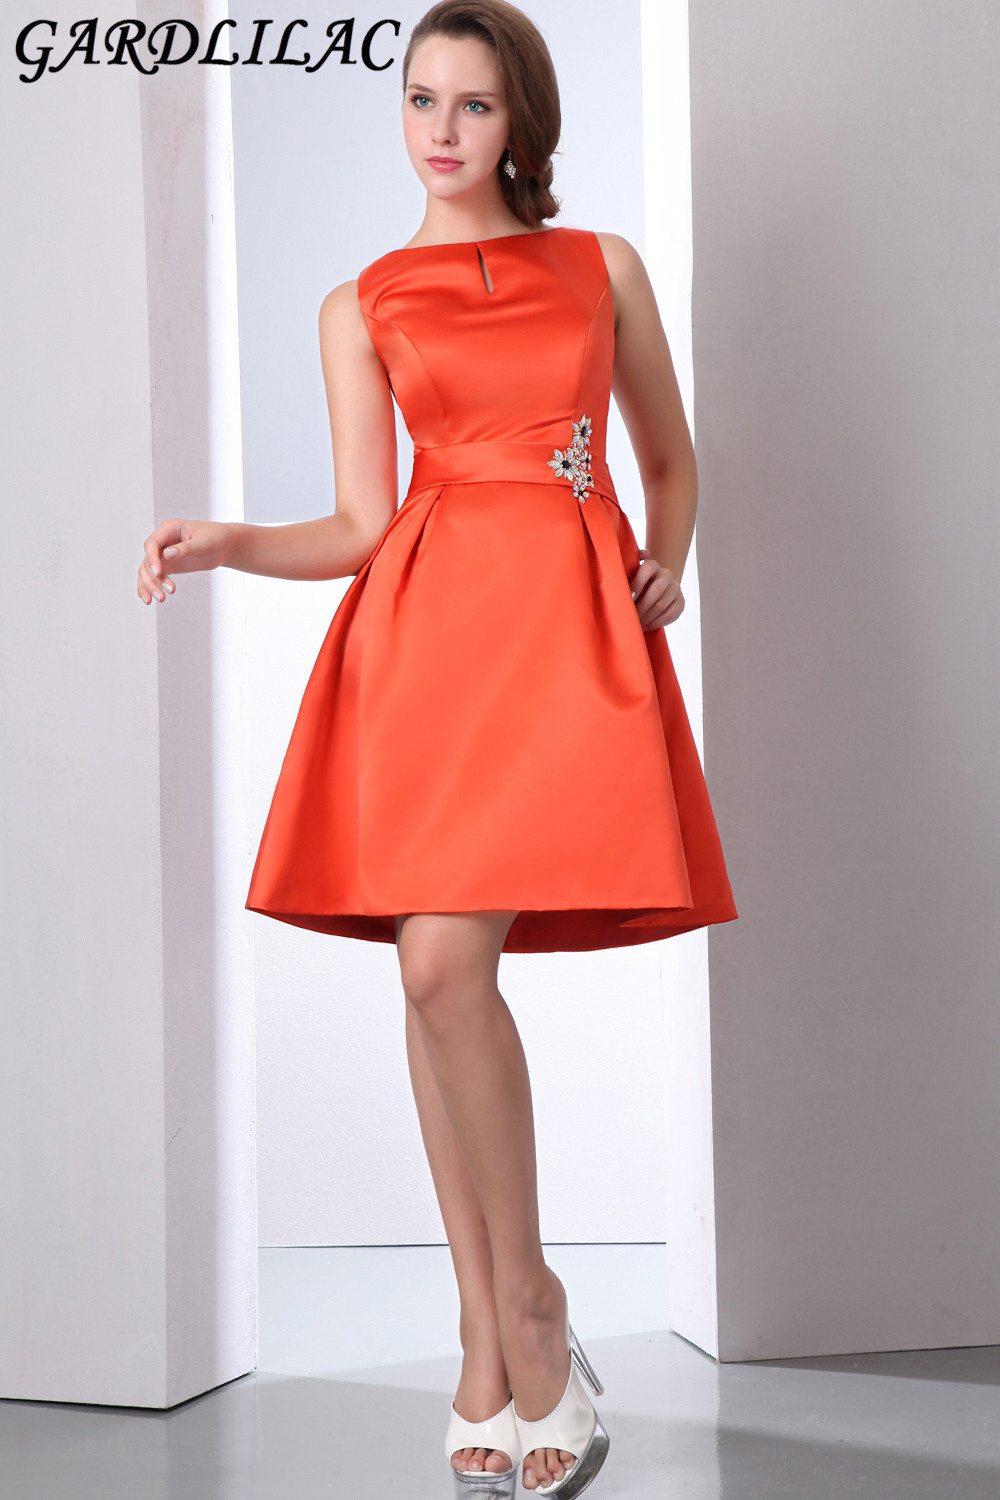 62bcf0b7e91 Robe de cocktail orange – Robes de soirée élégantes populaires en France